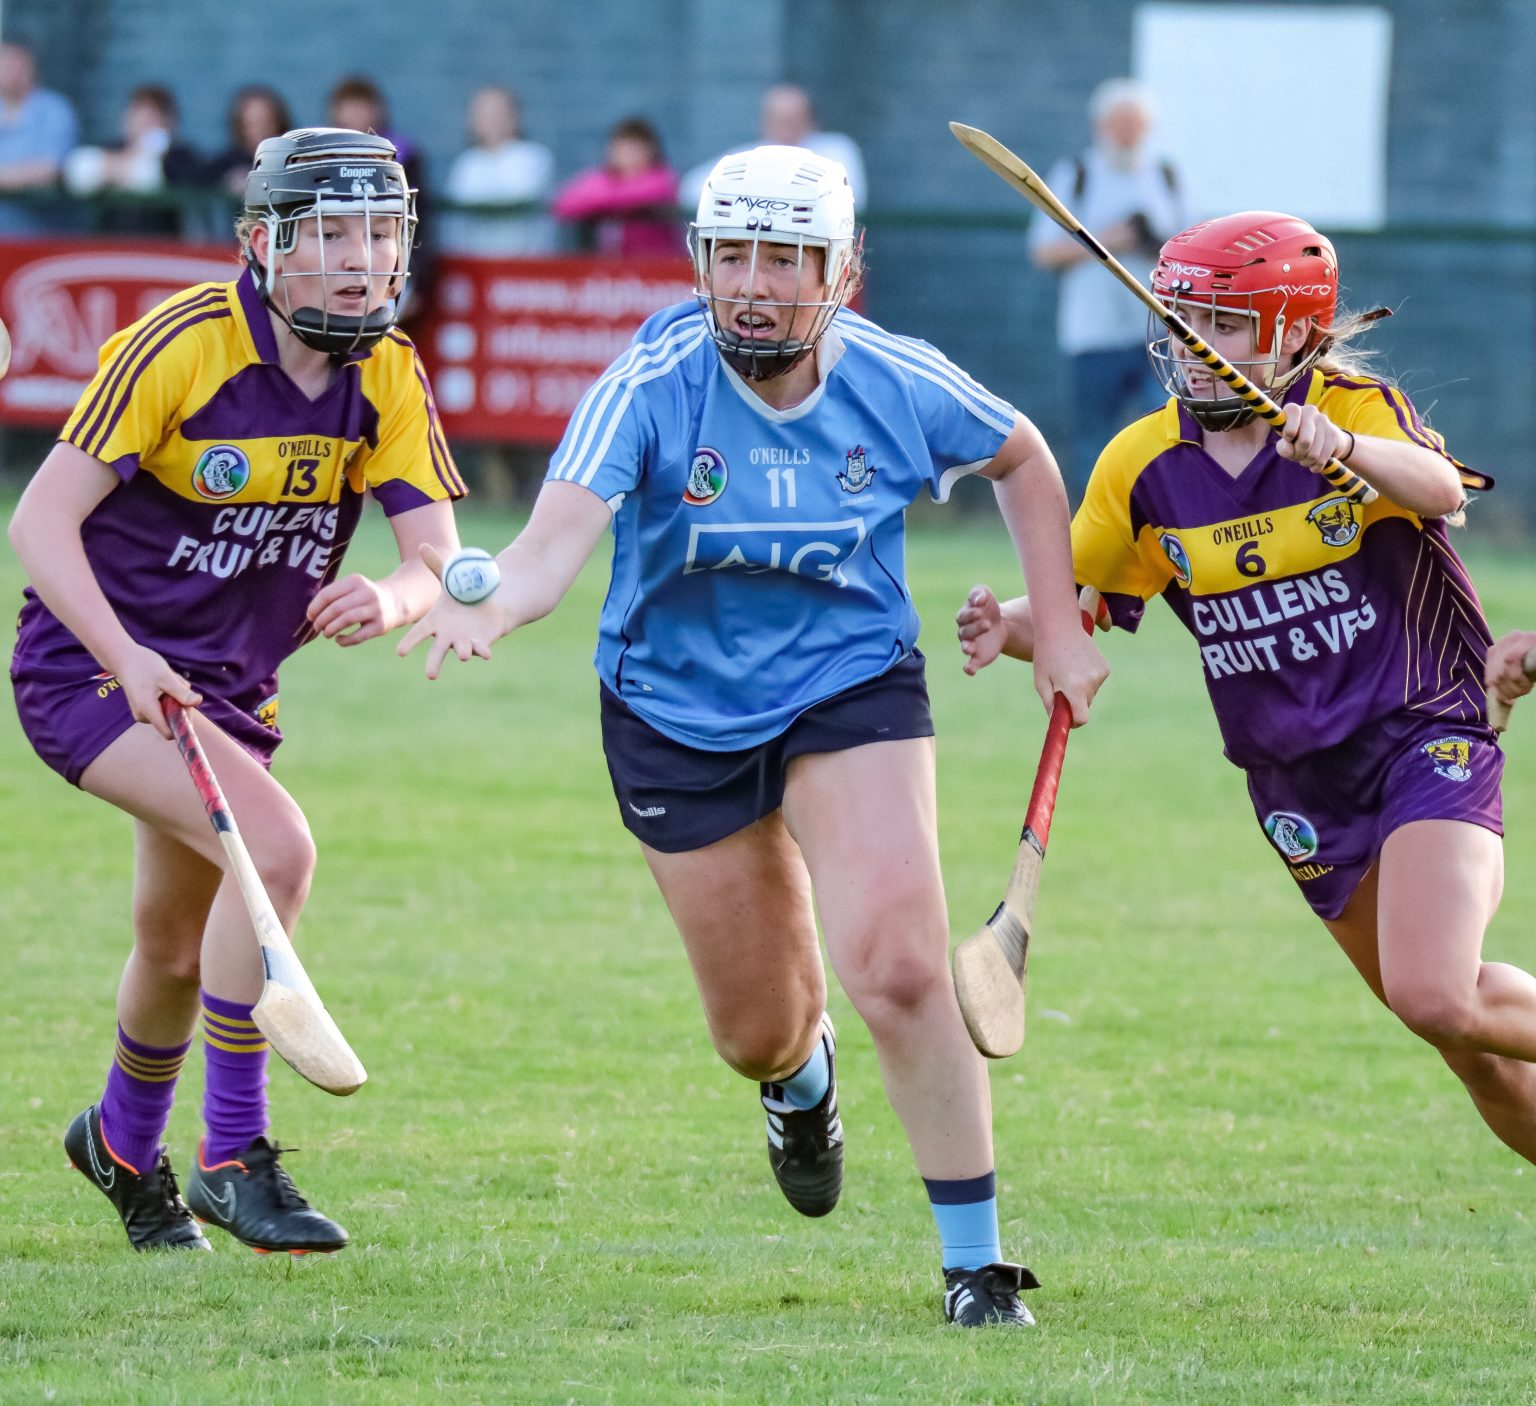 A Dublin Camogie player in a sky blue jersey, navy skort and white helmet hand passes the ball between two Wexford players in purple and gold jerseys, purple skorts and red and black helmets in the Leinster Minor camogie semi final